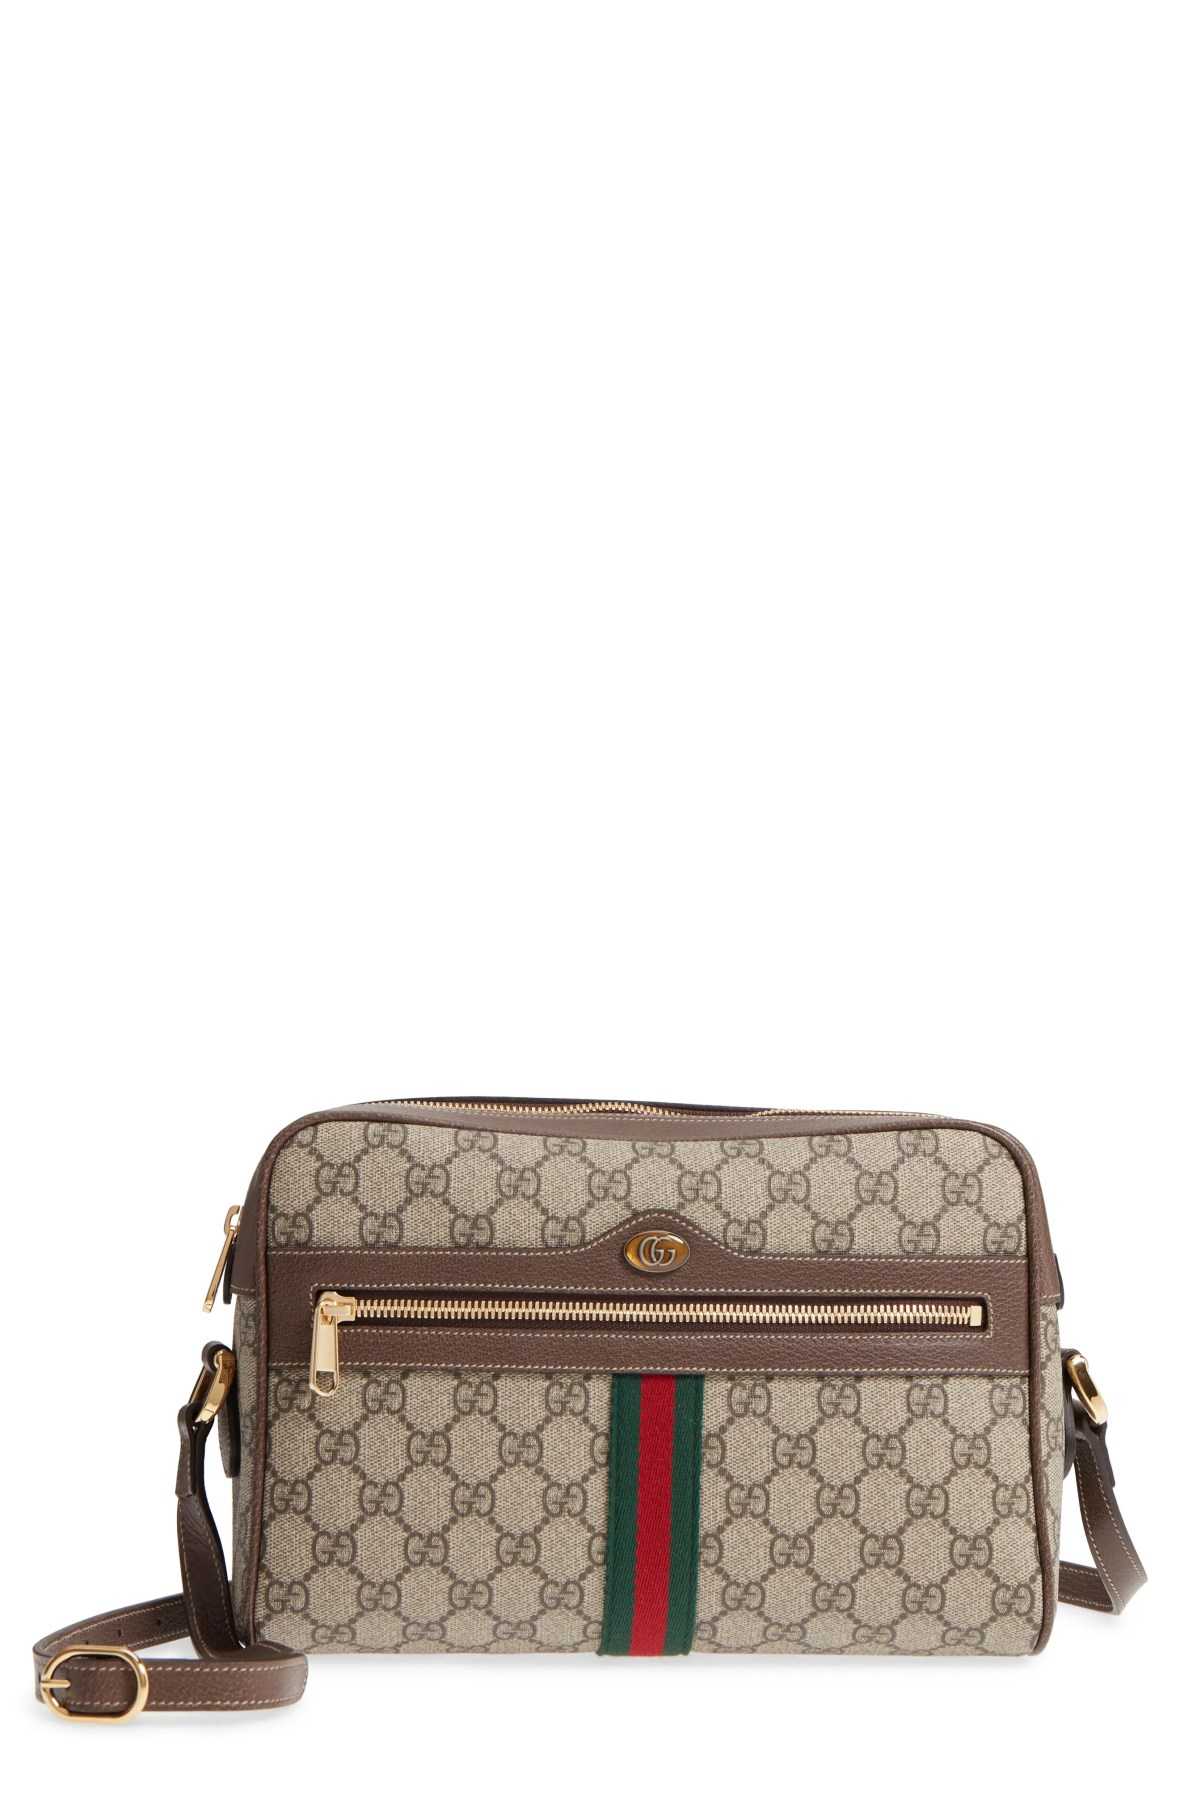 Gucci Ophidia GG Supreme Canvas Crossbody Bag